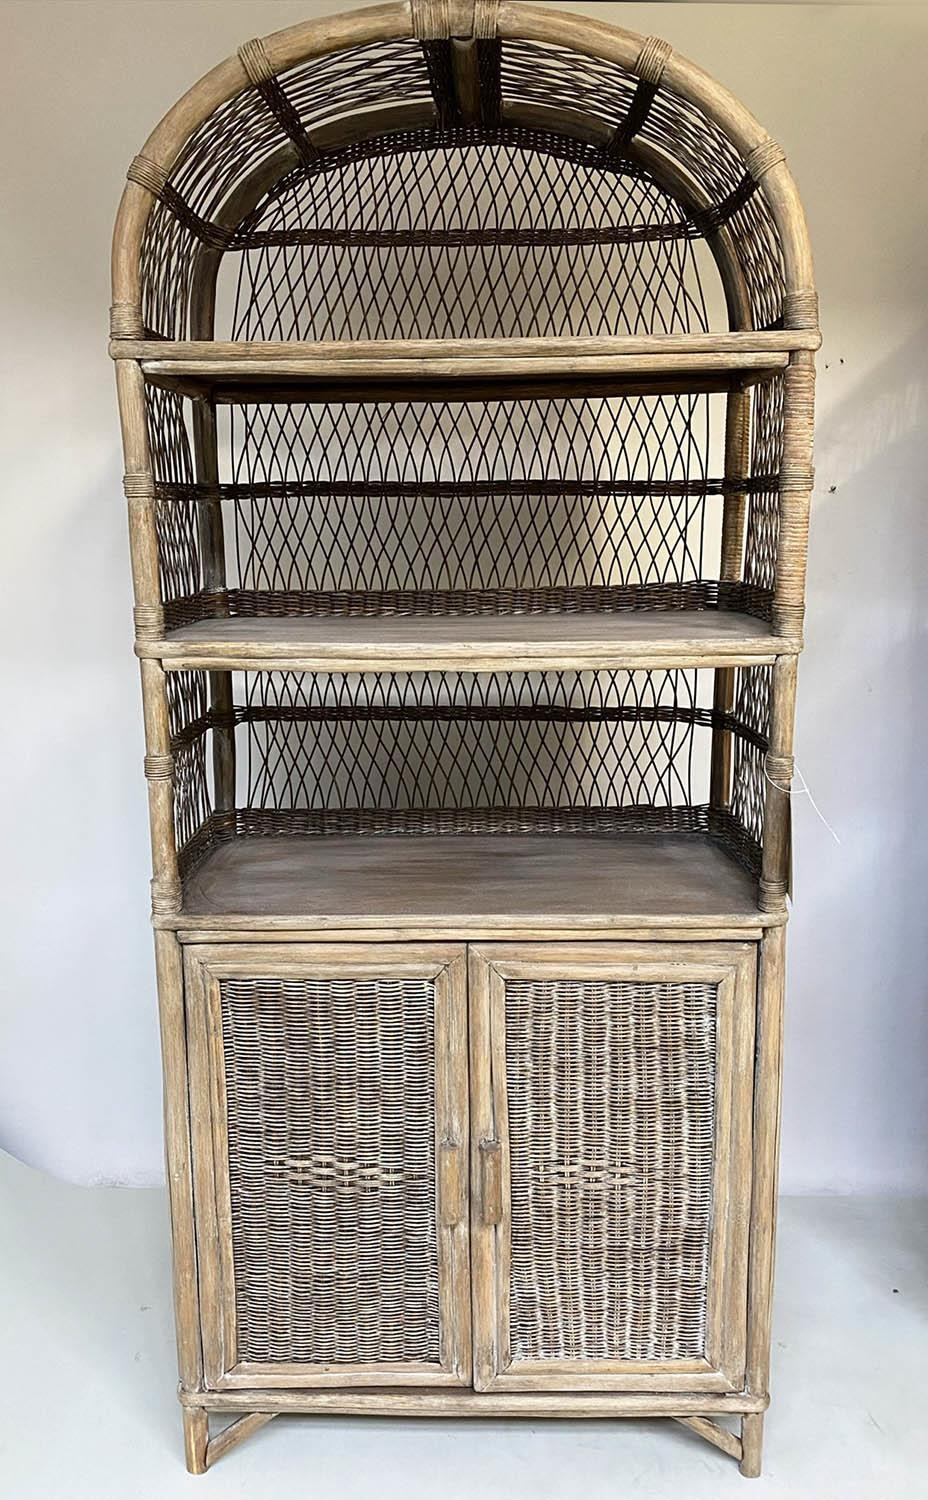 CANE BOOKCASE, rattan bamboo and cane bound with wicker panels each arched with shelves and